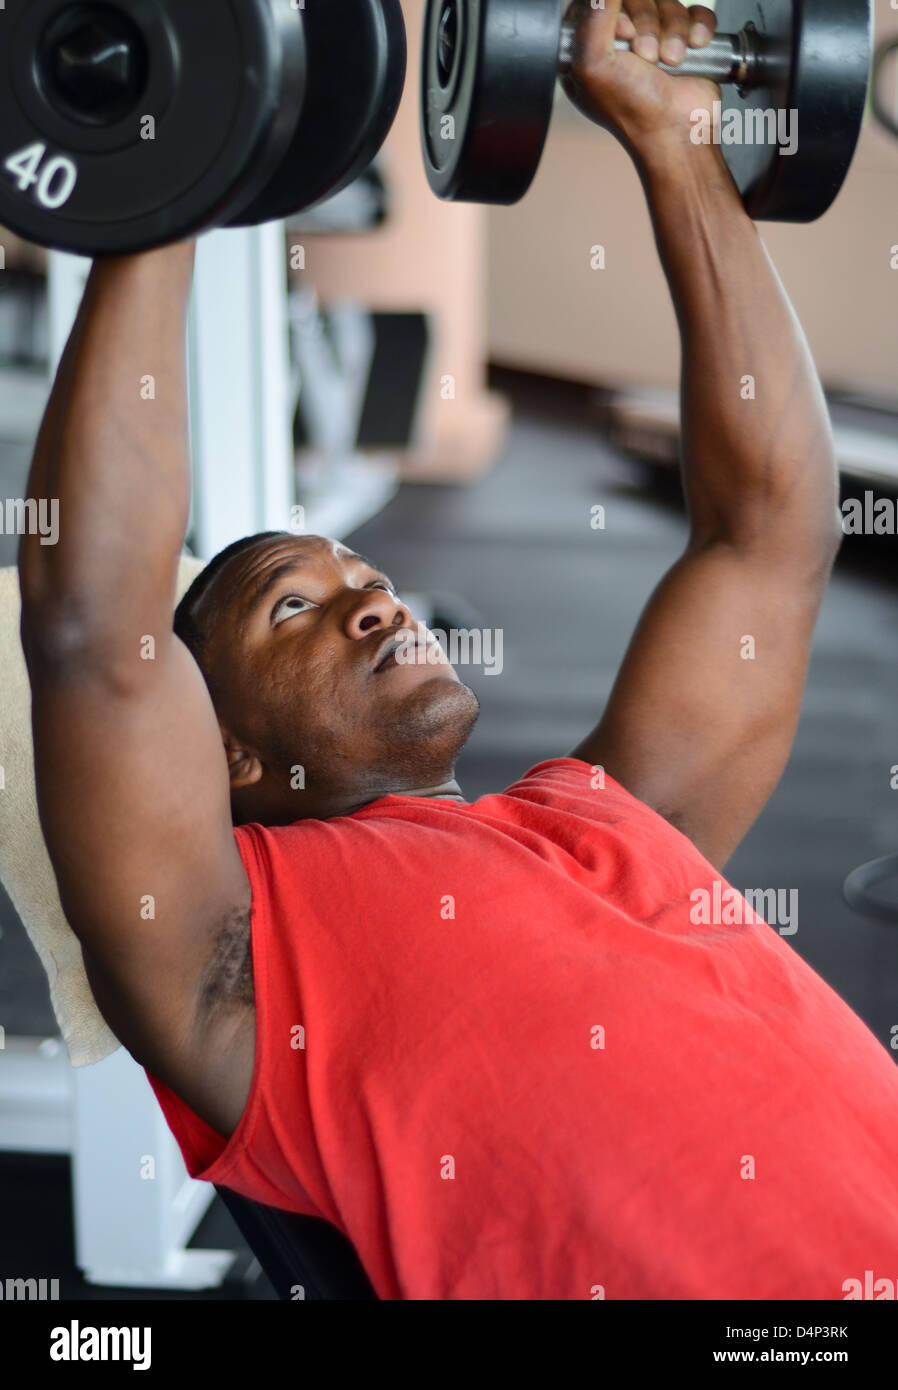 An African American man at the gym working out - Stock Image